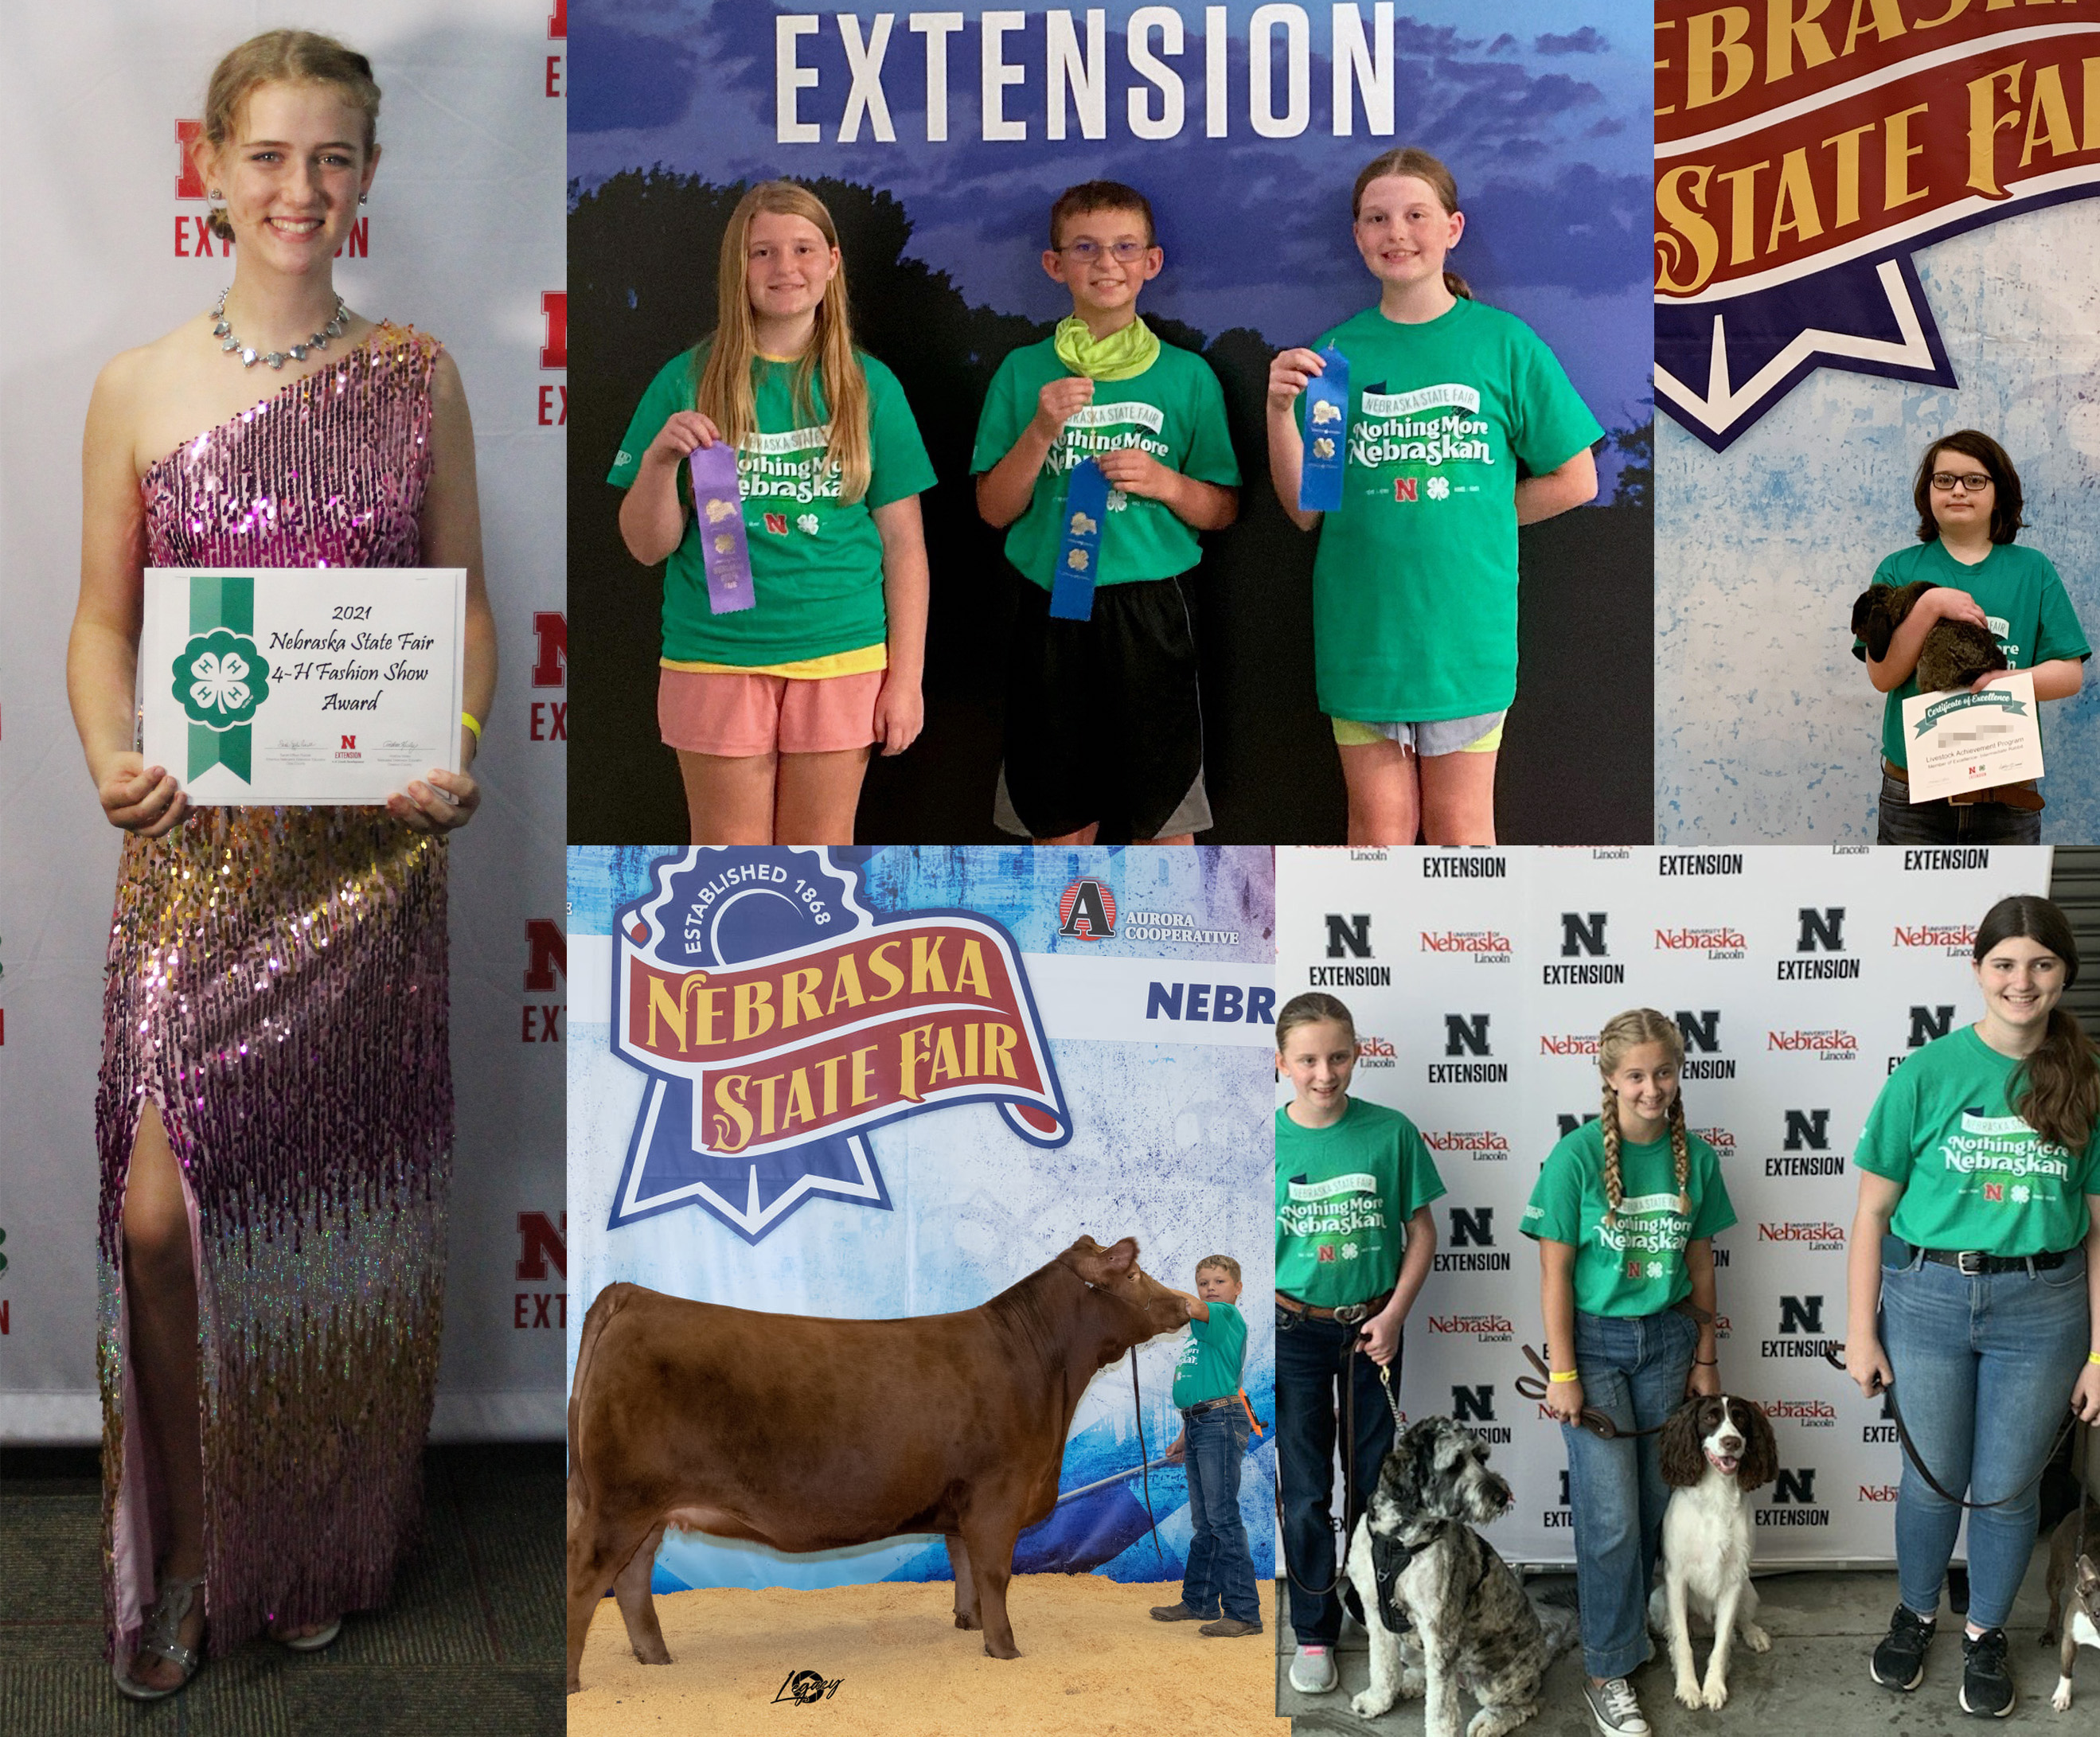 Clockwise from top left: 1 of 5 top Fashion Show awards, Horticulture Judging Contest Intermediate Team, Livestock Achievement Program Member of Excellence, several members of the 4 on the Floor 4-H dog club, Supreme Reserve Champion Breeding Heifer